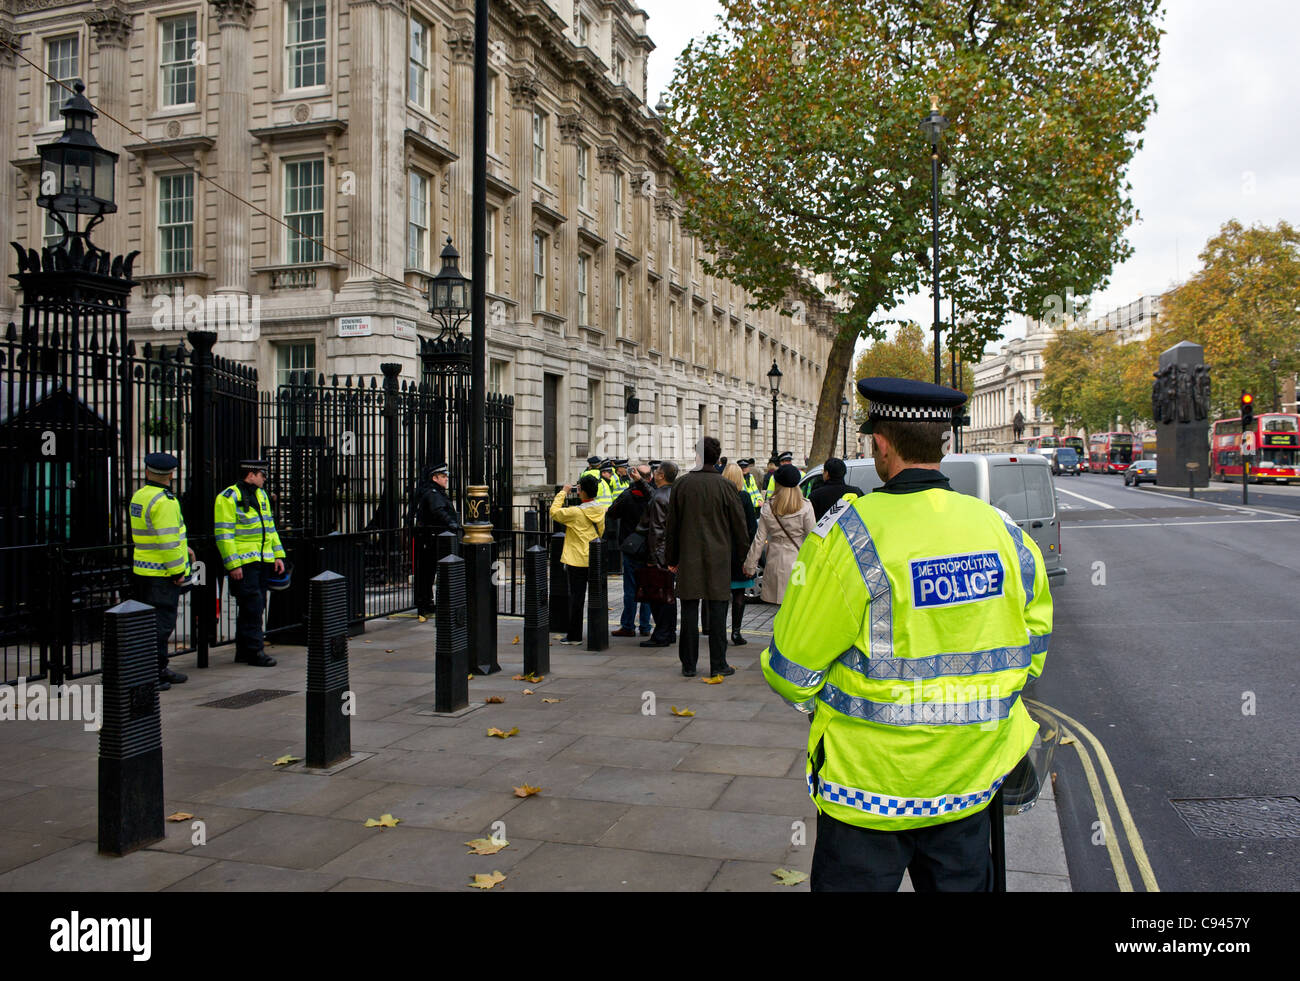 Metropolitan Police on duty outside the entrance to Downing Street in London Stock Photo